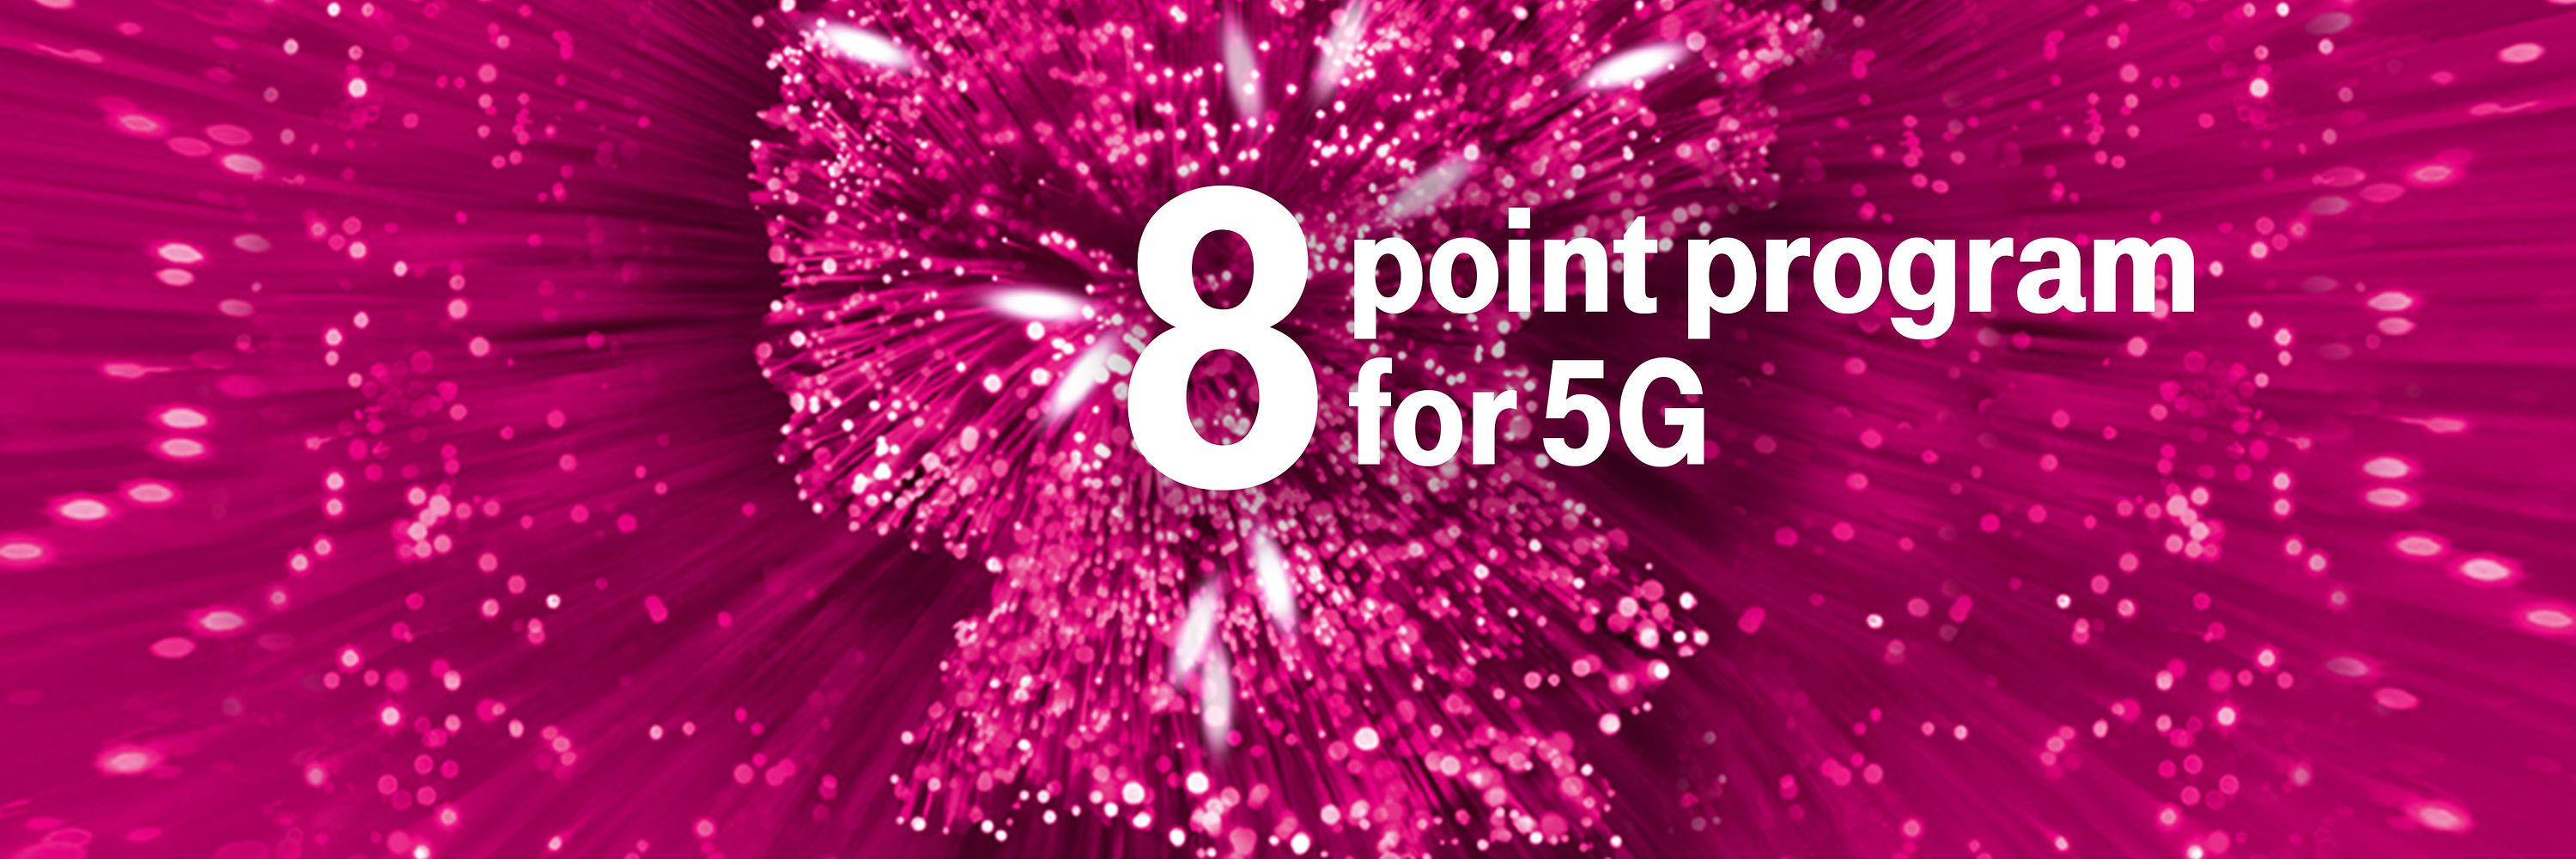 8 point program for 5G